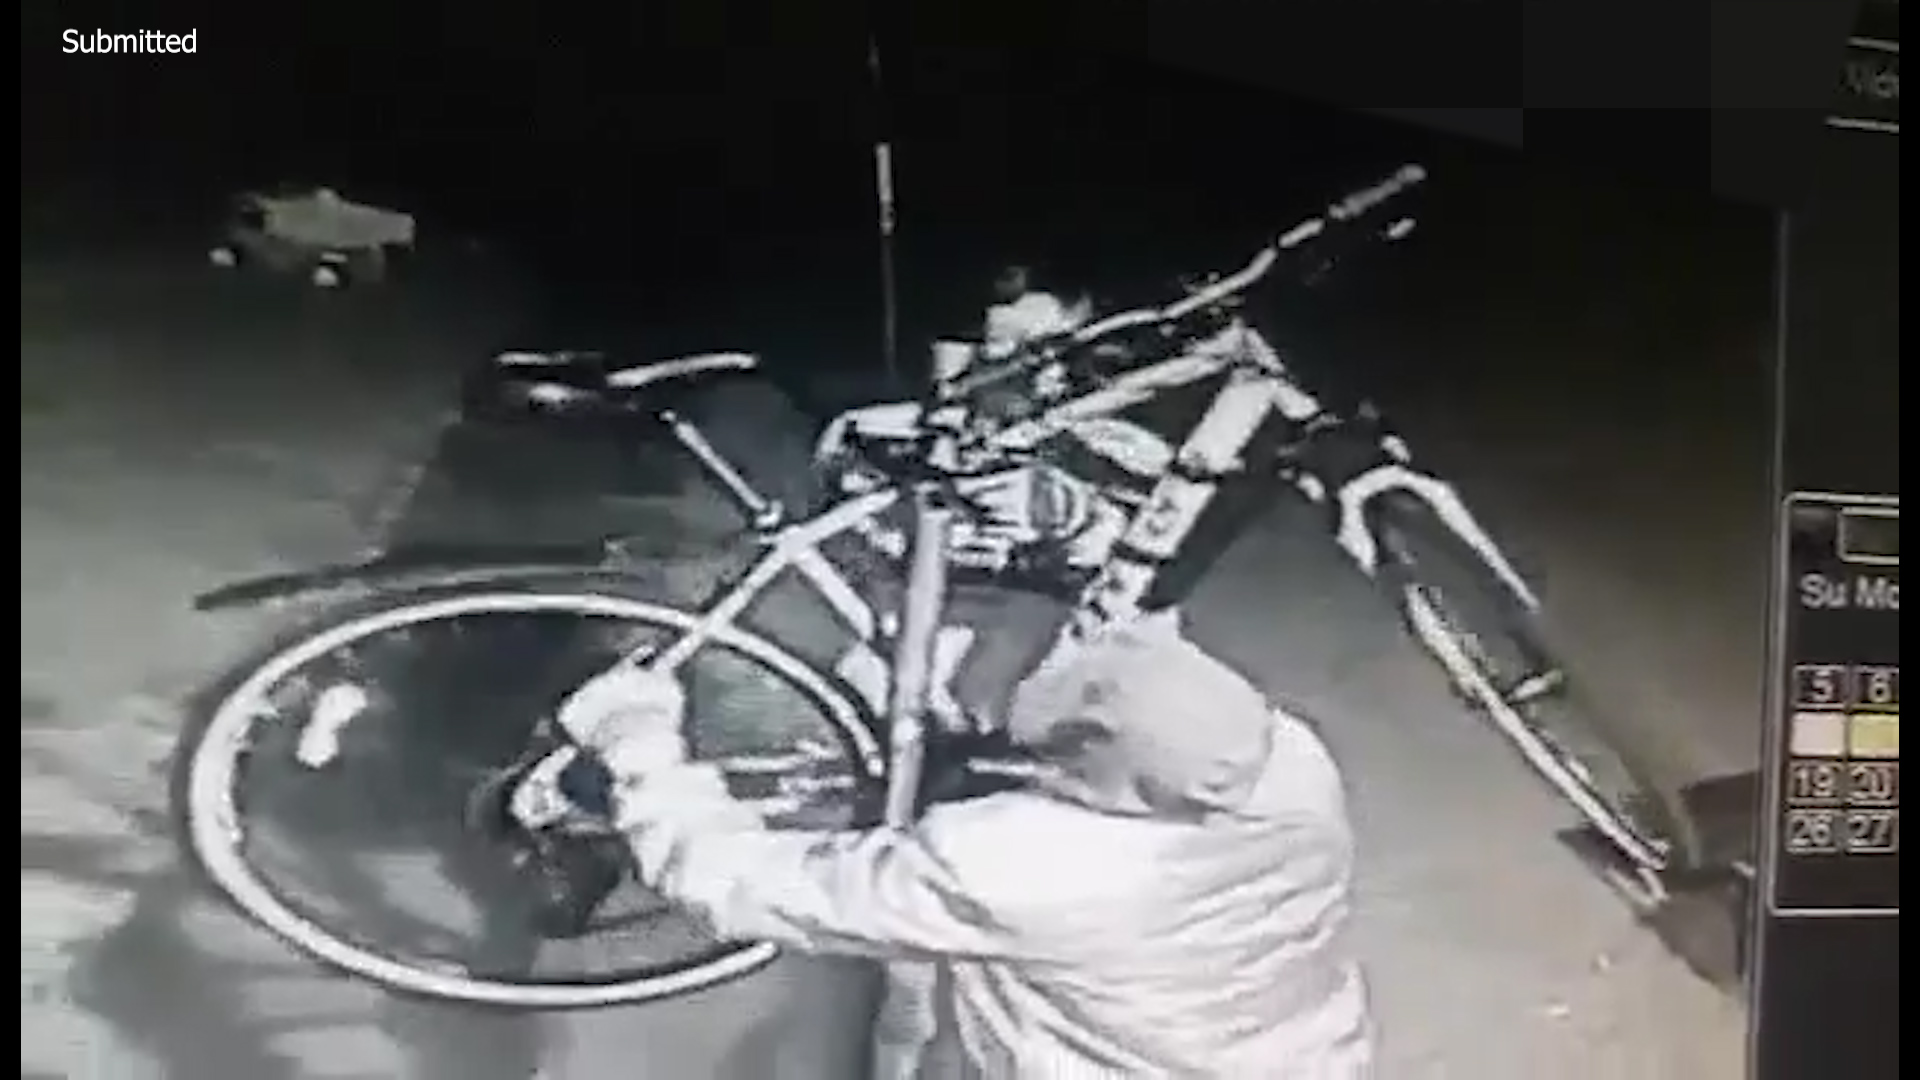 A screenshot from the CCTV showing the theft at Printfield Terrace